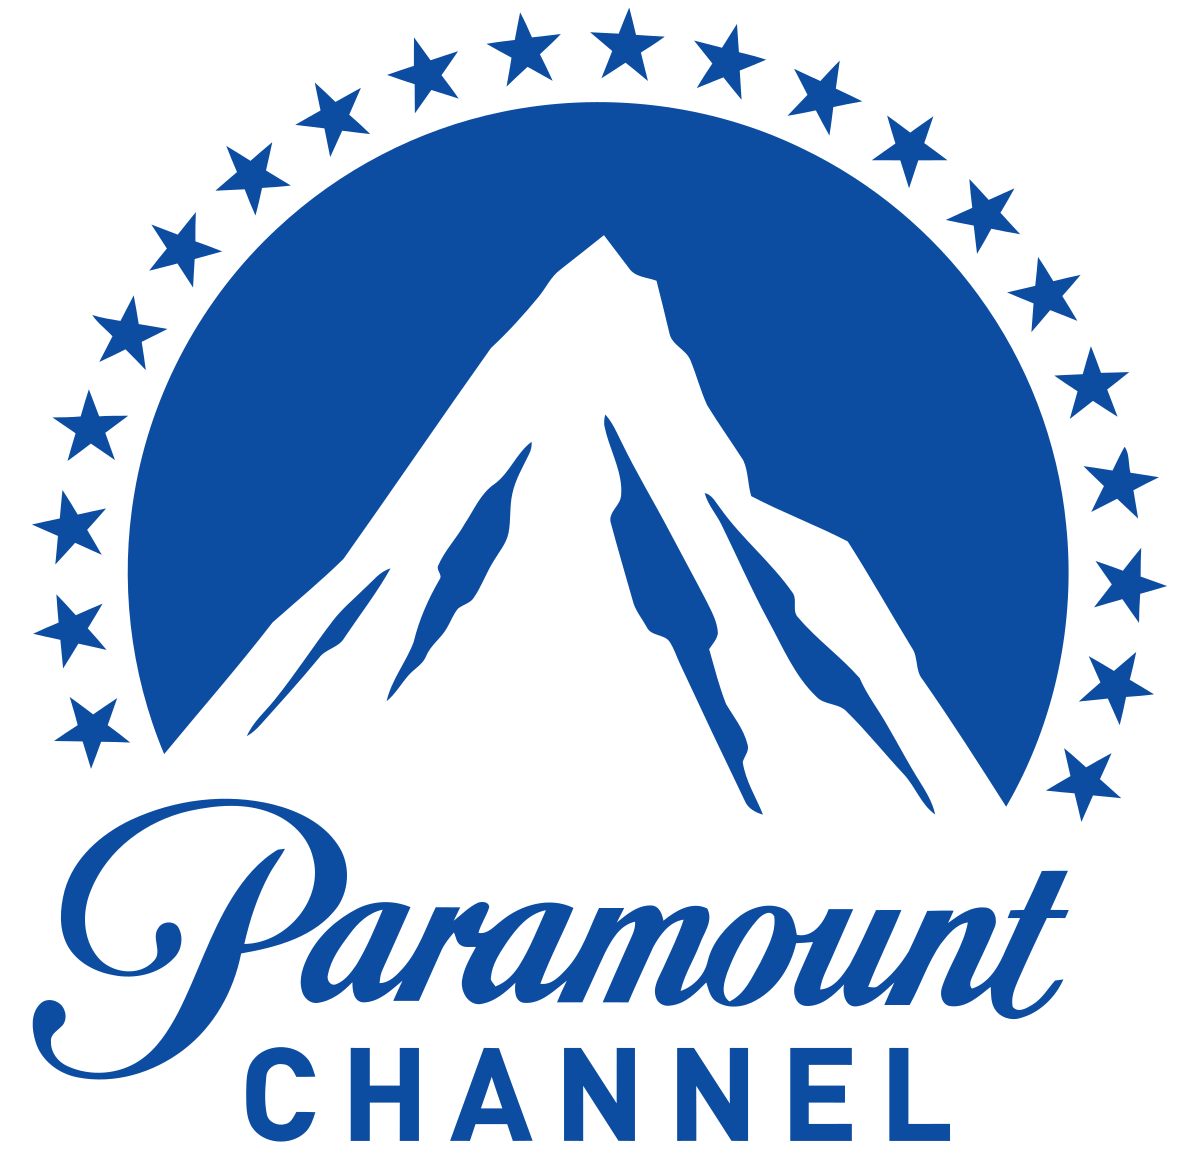 Paramount Channel.